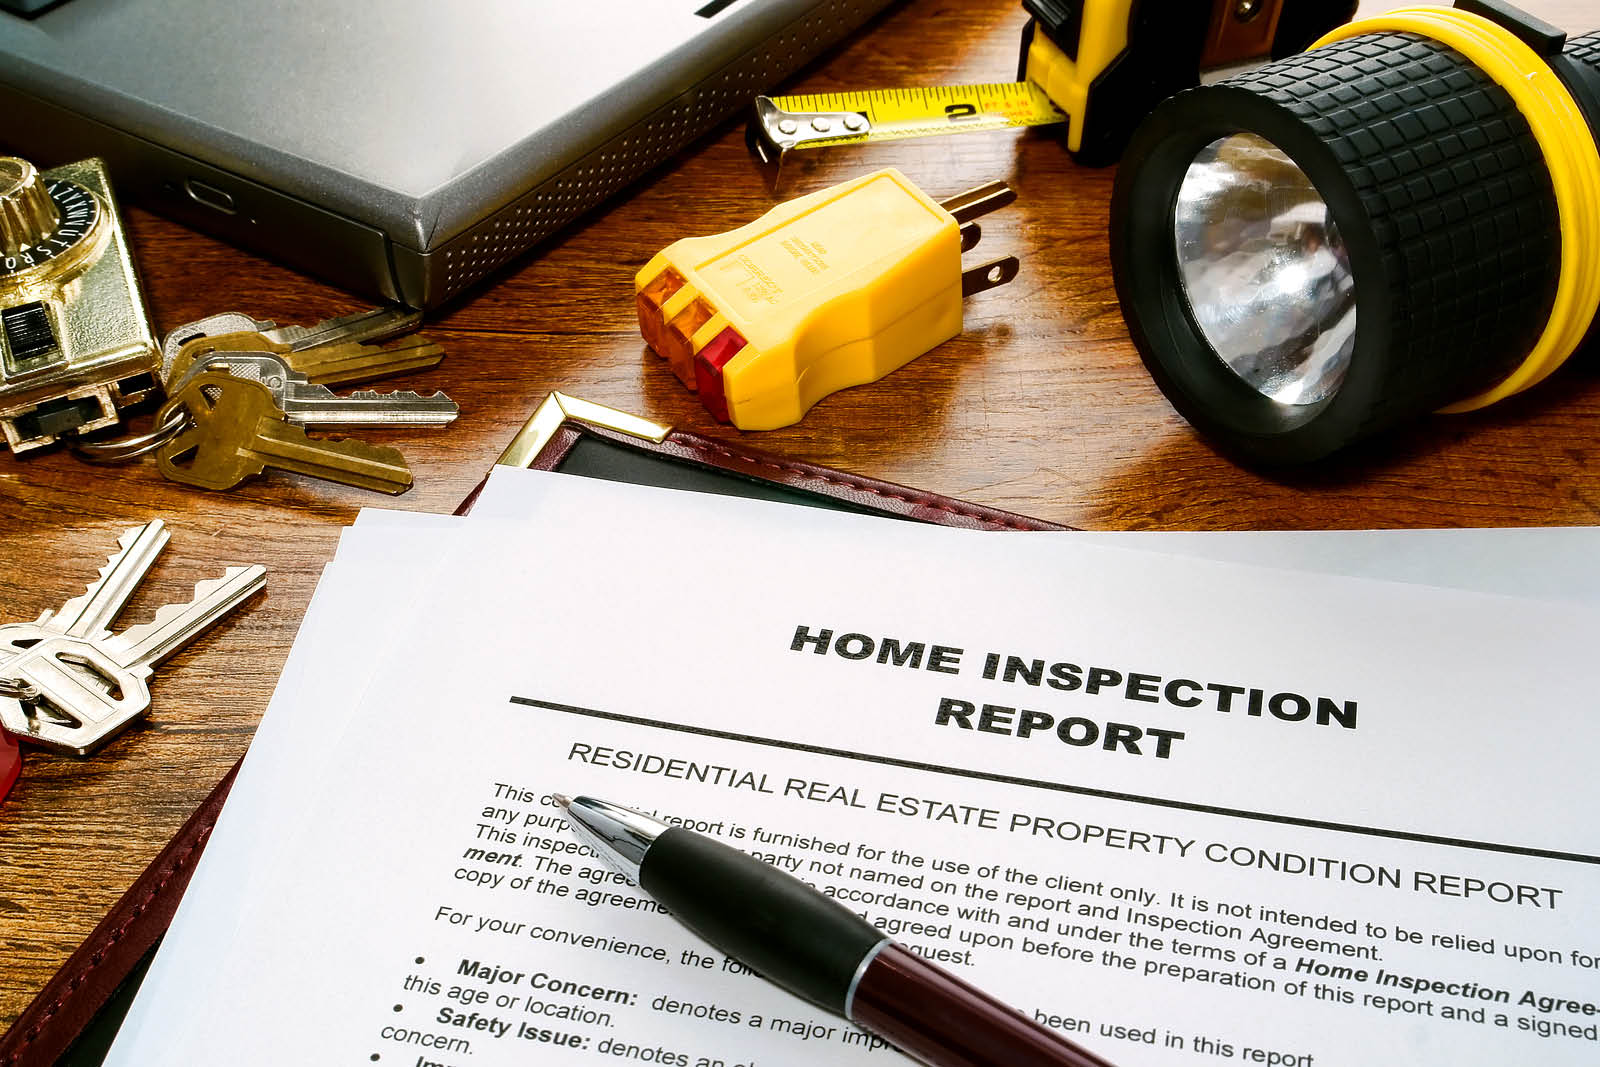 home inspection, radon testing, pest treatment, well sampling, septic test, mold, lead paint; servicing waldorf, md and surrounding